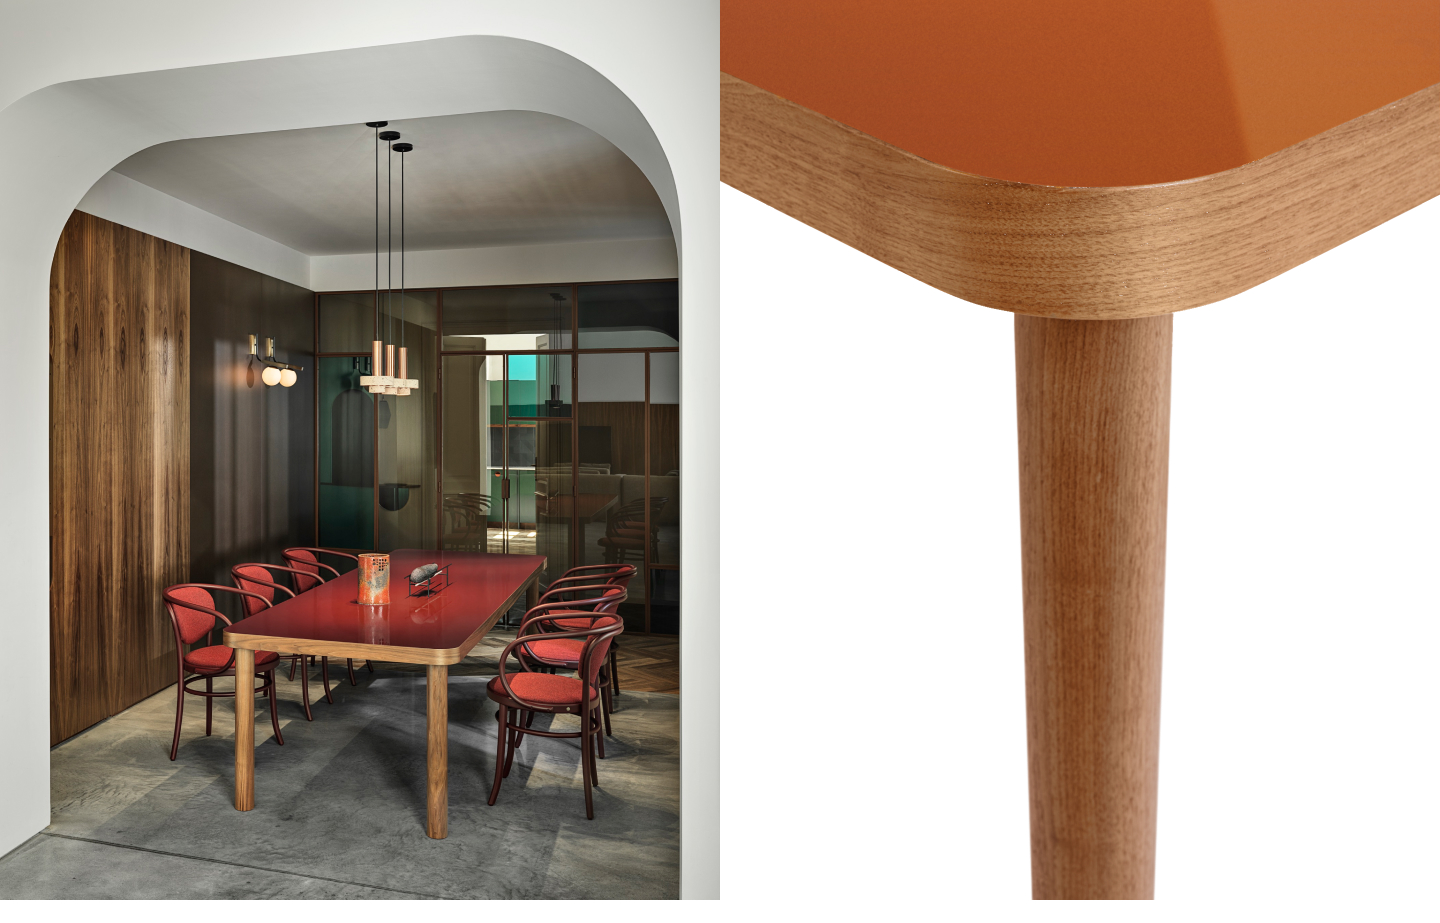 Large wooden table with lacquered table top